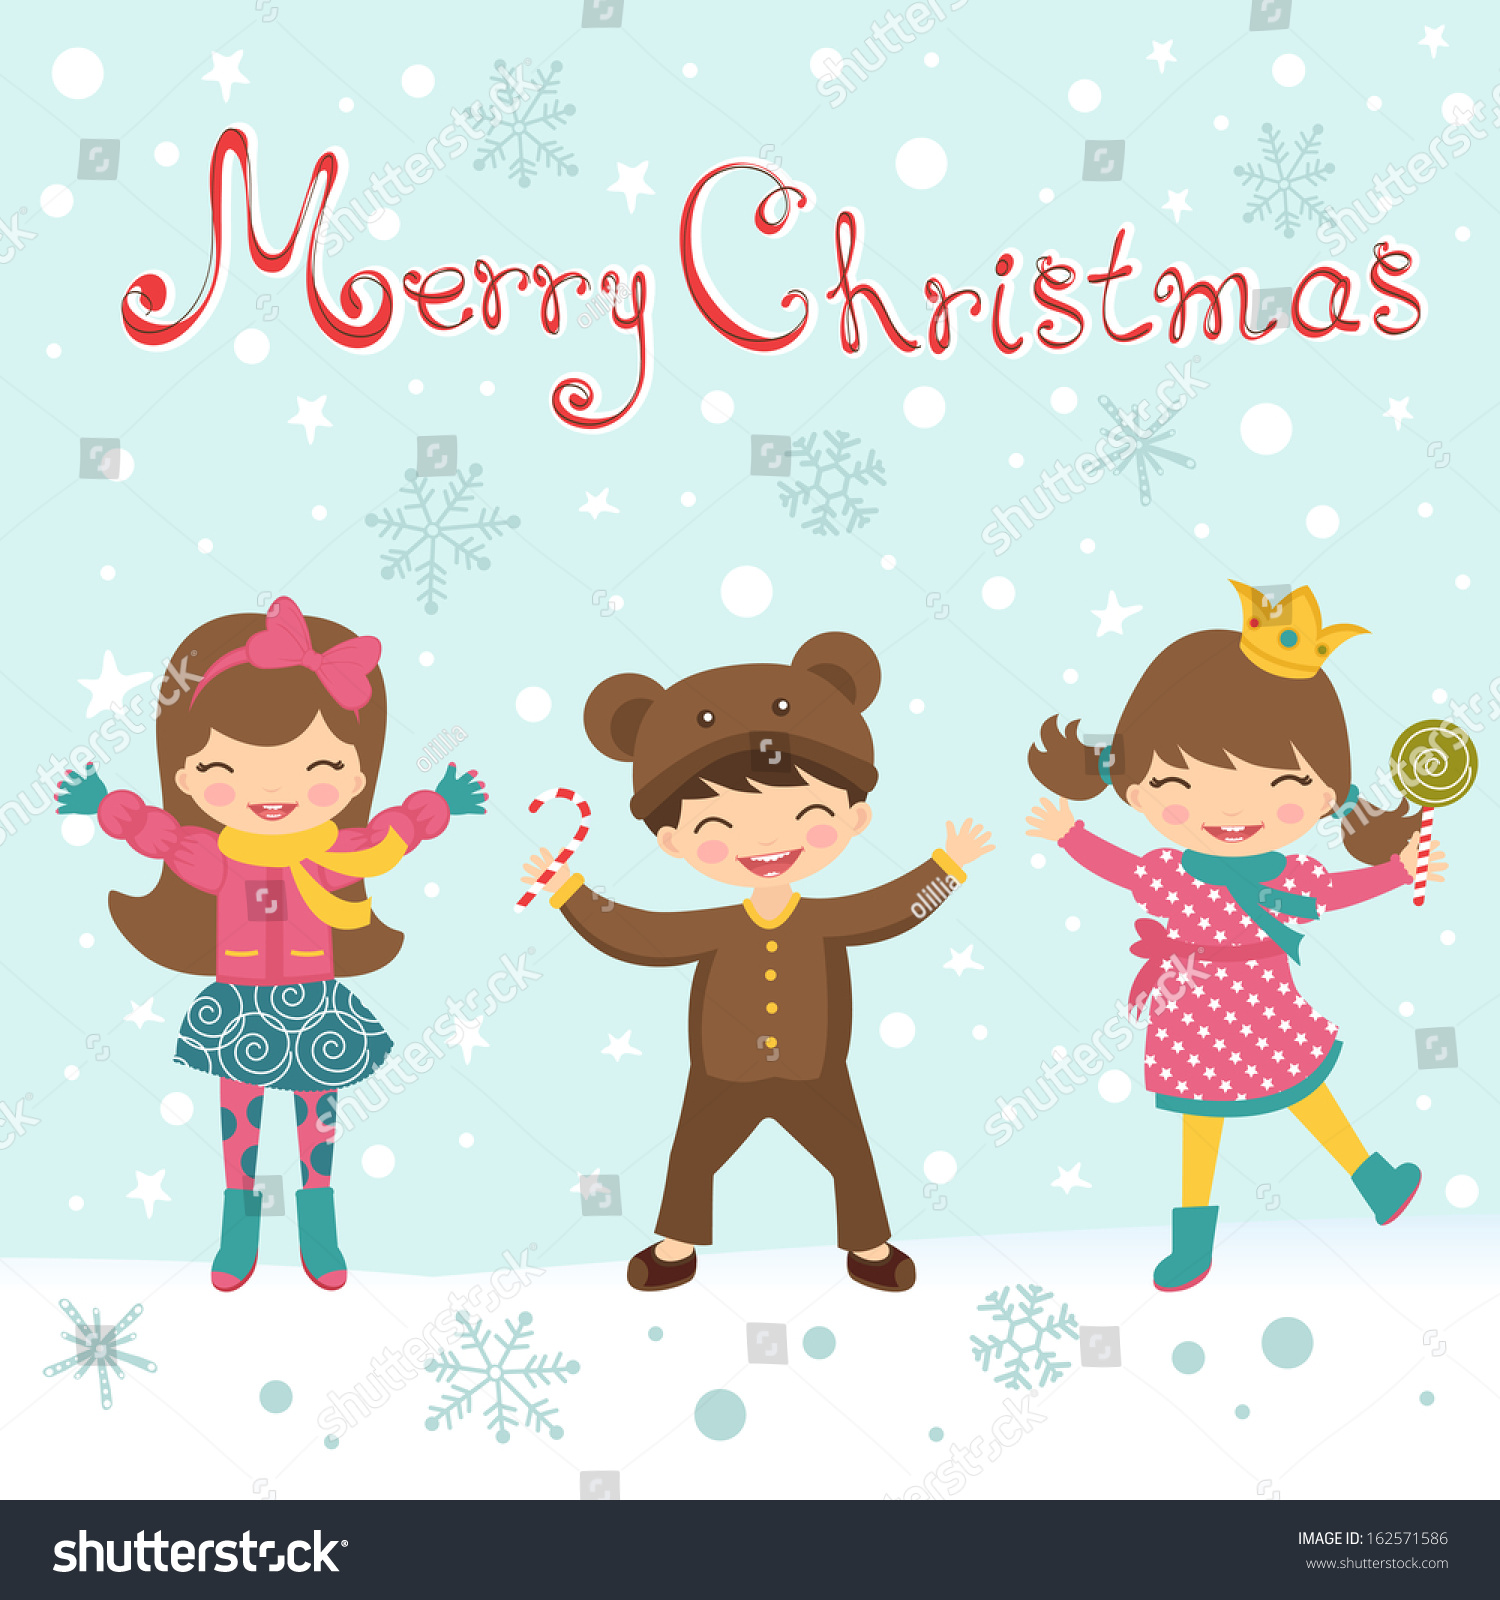 Merry Christmas Card With Happy Kids Stock Vector